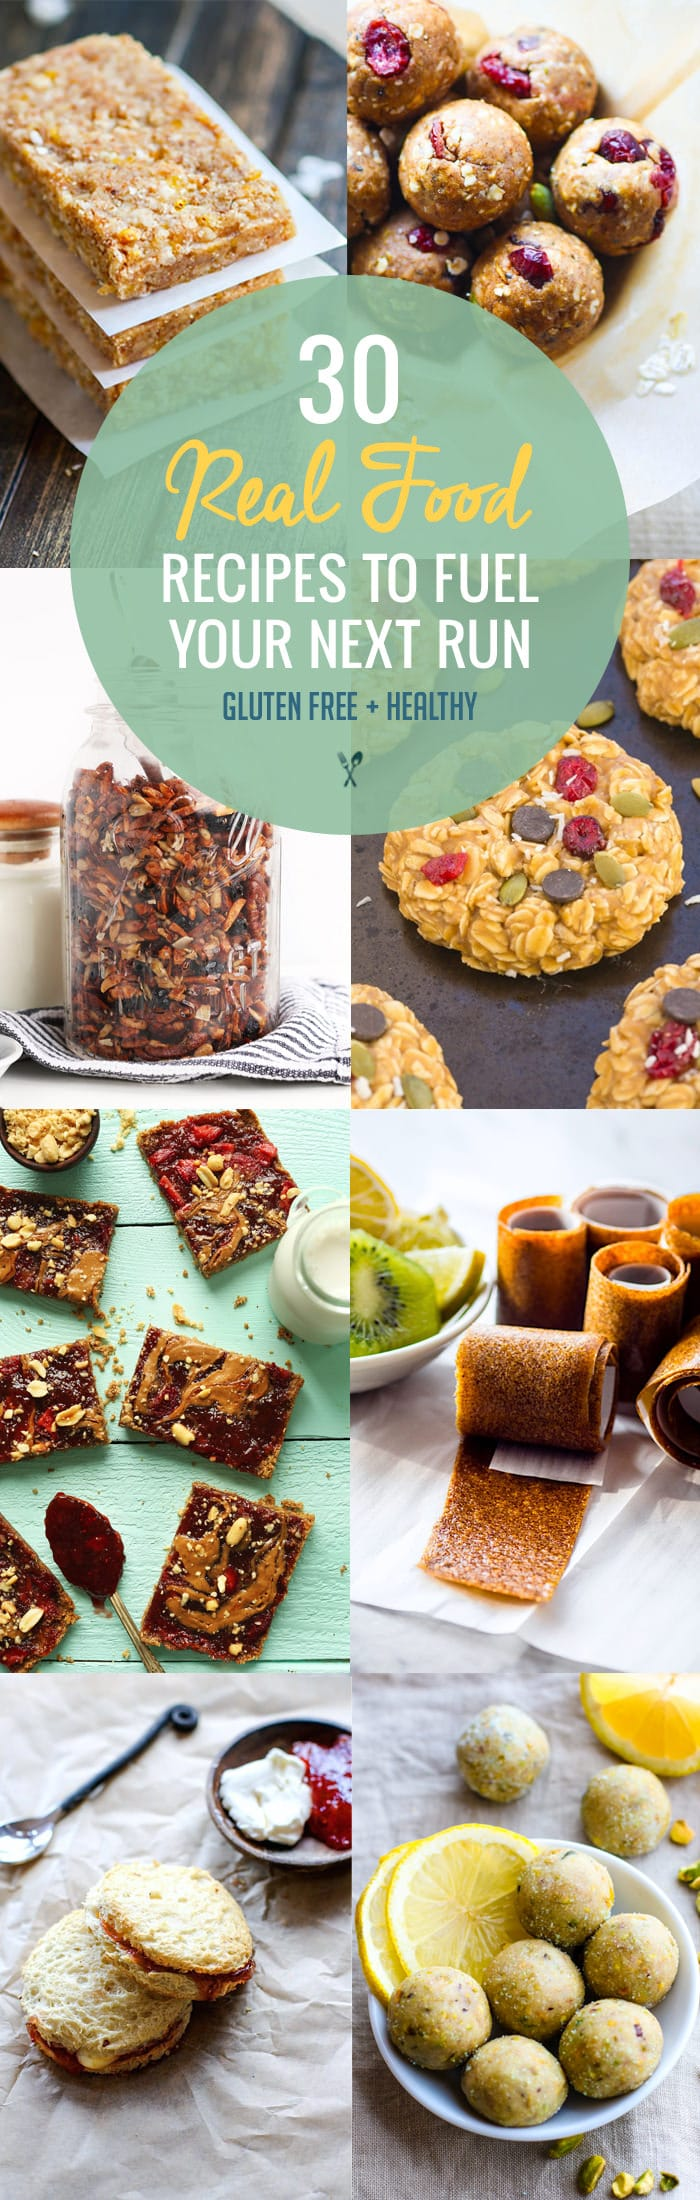 Skip the packaged food and try these 30 Real Food Gluten Free Recipes to Fuel Your Next Run or Workout! Natural energy to fuel you for a run or even sustain you after! Gluten free recipes that are healthy, easy to make, homemade, and delicious.